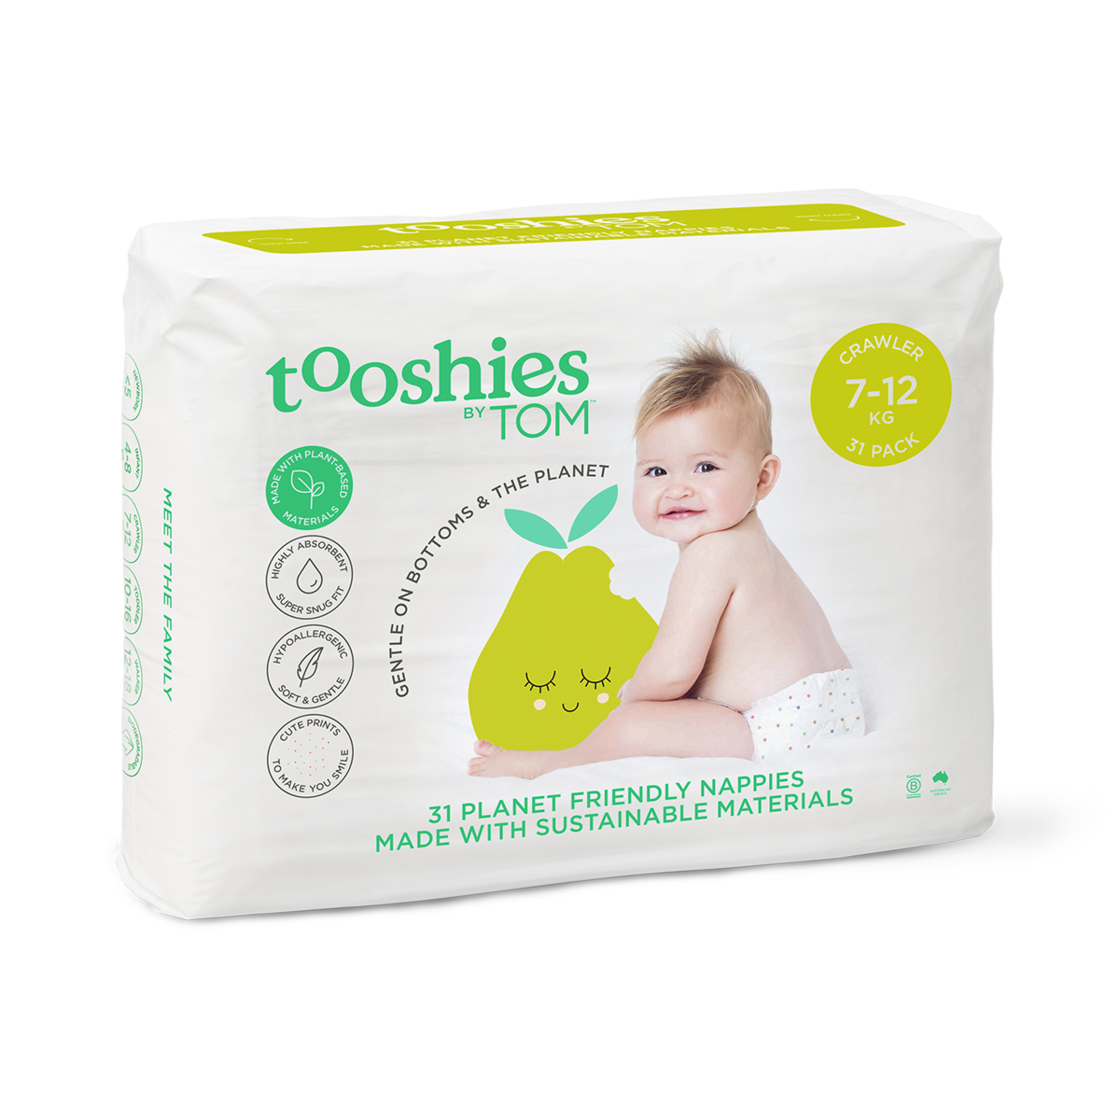 Eco Nappies – Infant 7-12 kg, 31 pcs by Tooshies by TOM